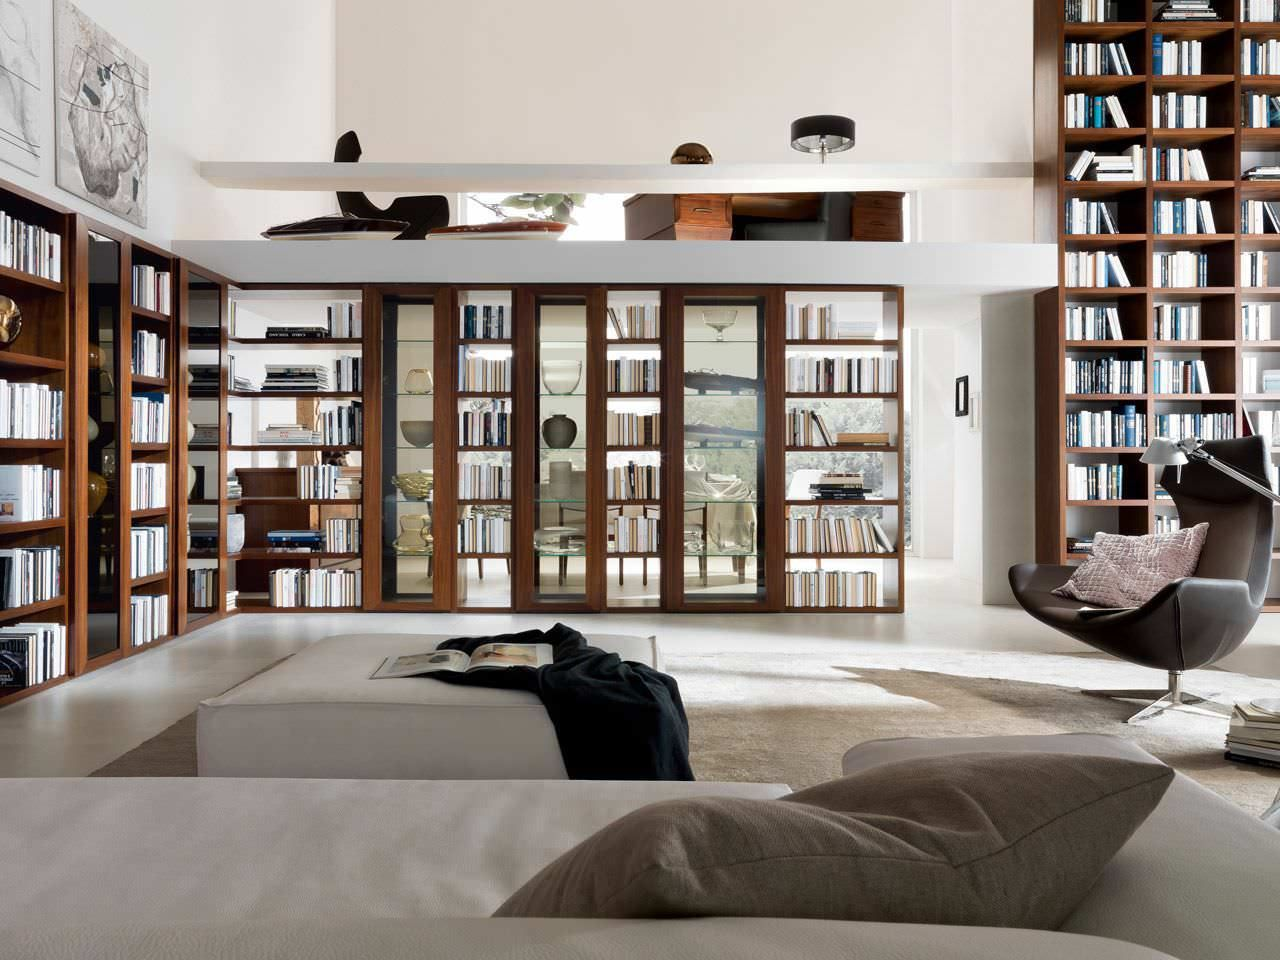 Remarkable 10 Best Images About Library On Pinterest Home Library Design Largest Home Design Picture Inspirations Pitcheantrous